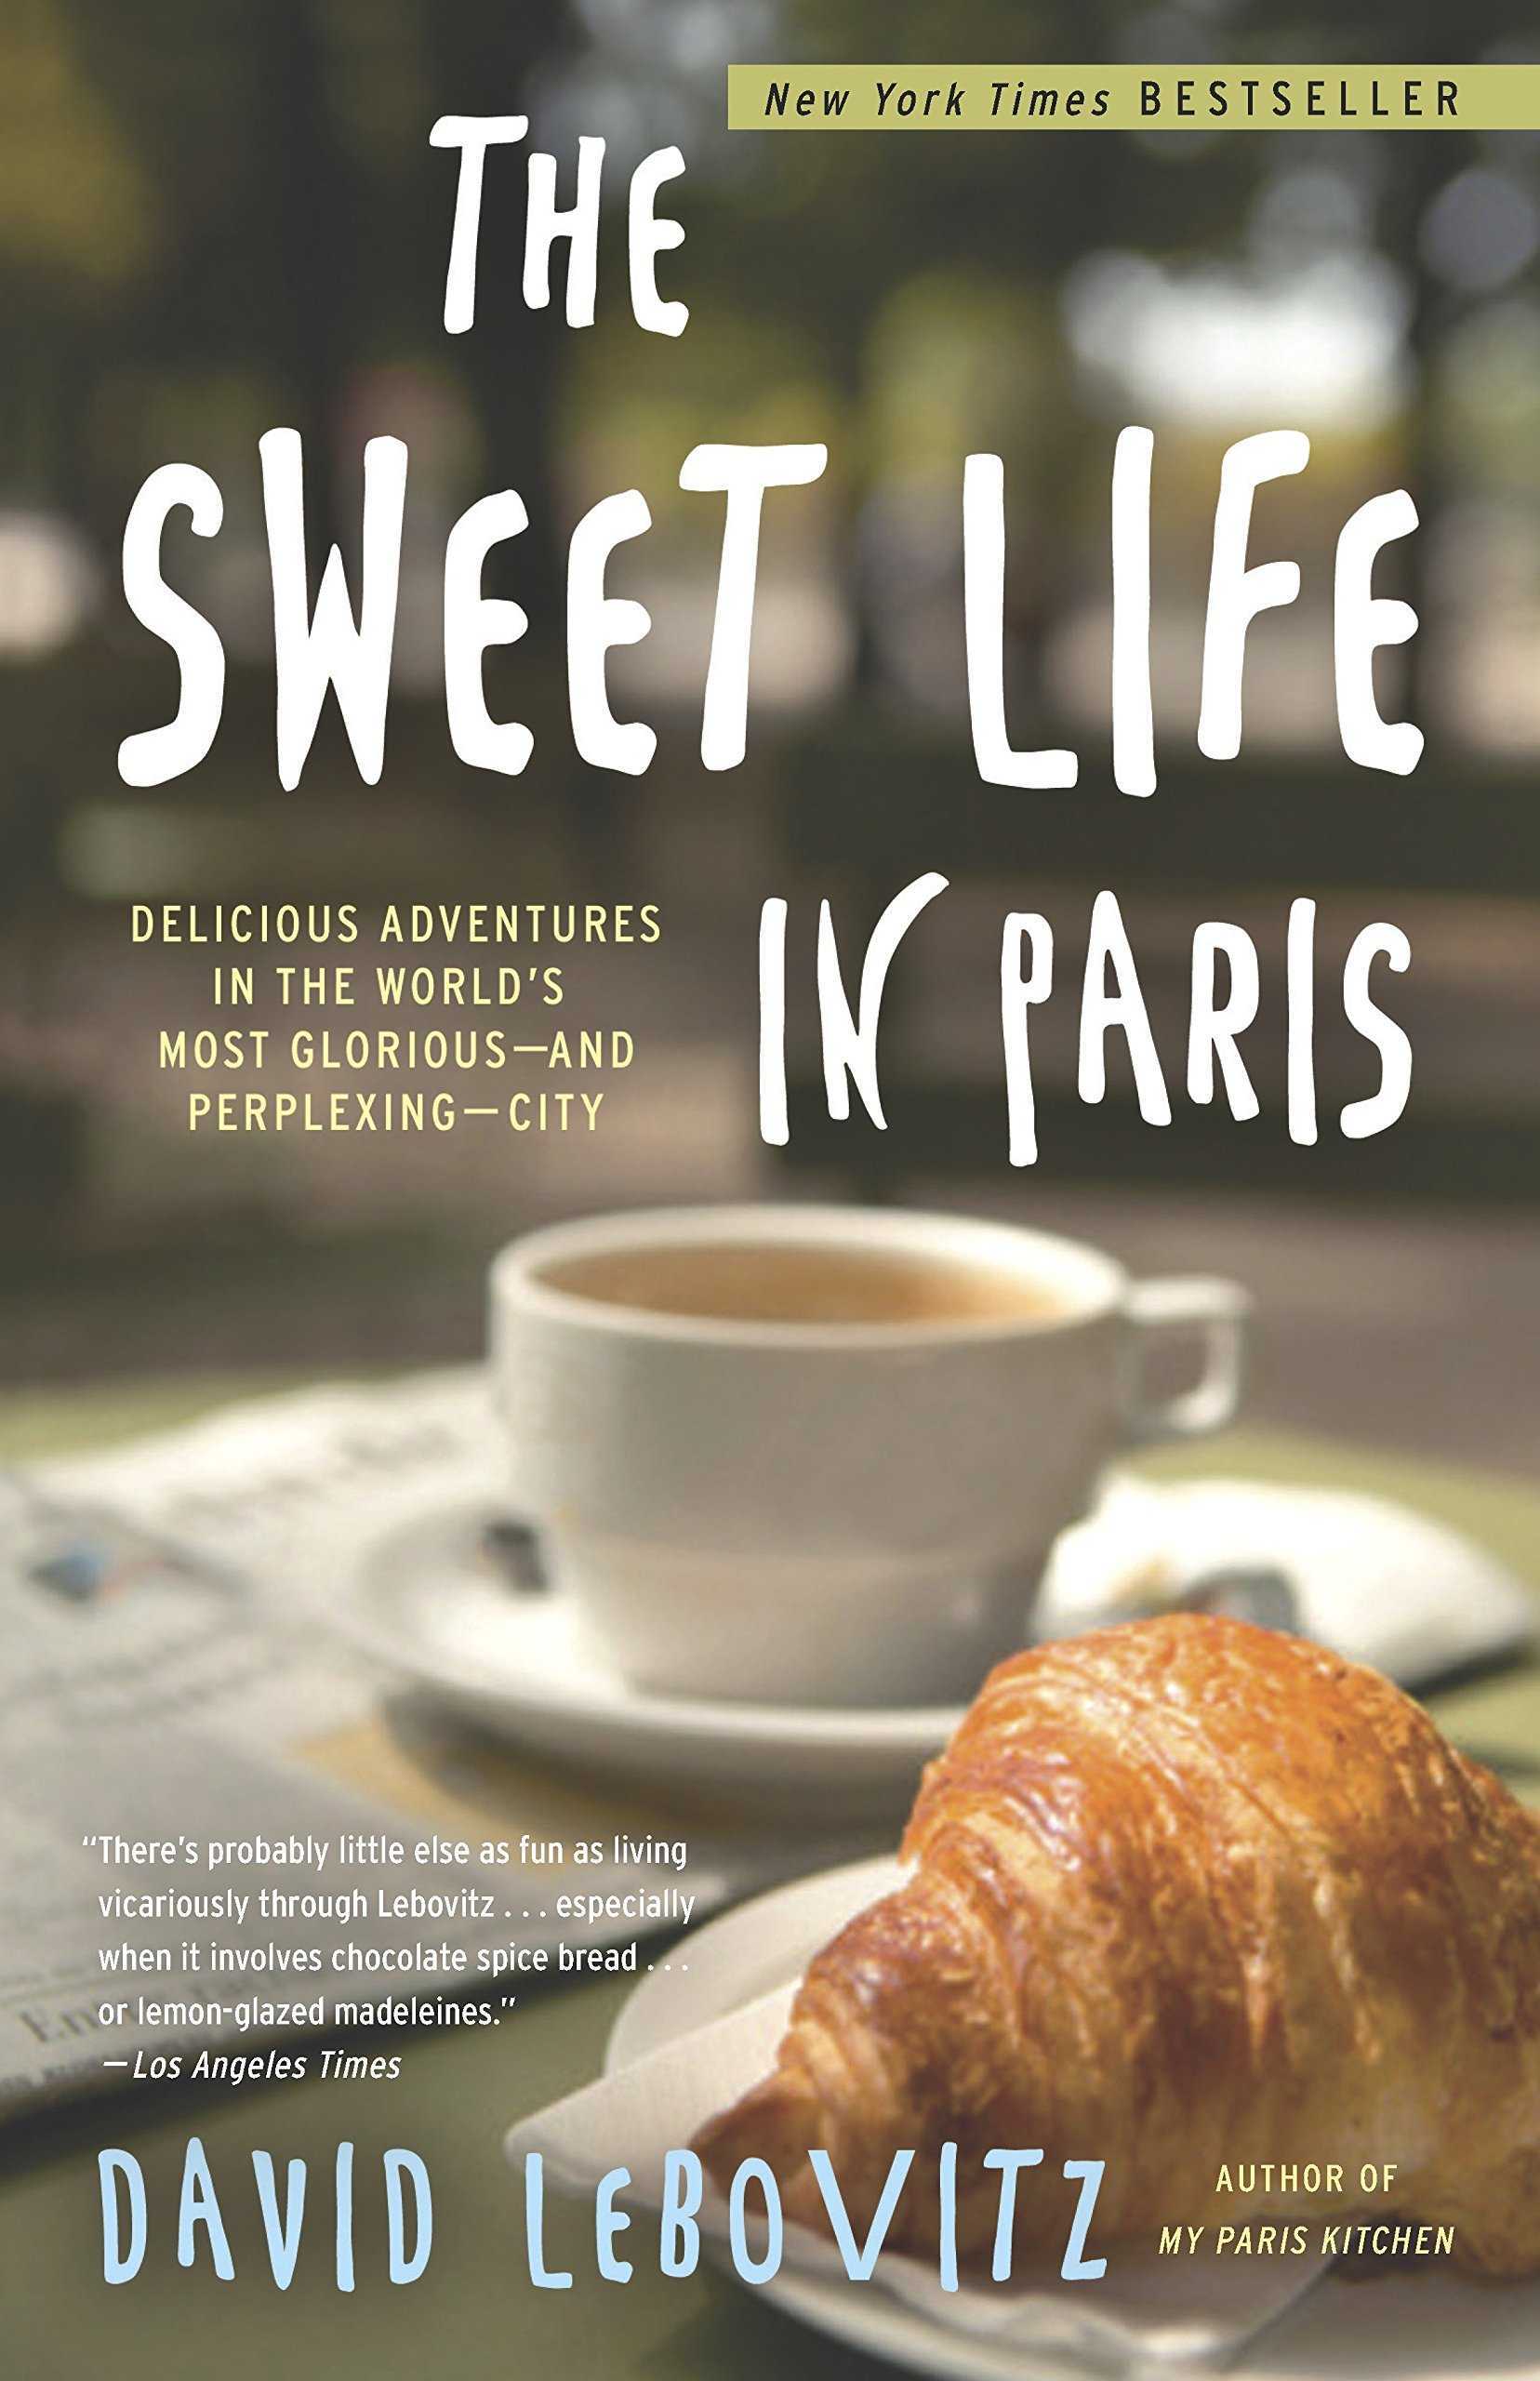 The Sweet Life in Paris: Delicious Adventures in the World's Most Glorious - and Perplexing - City pdf epub